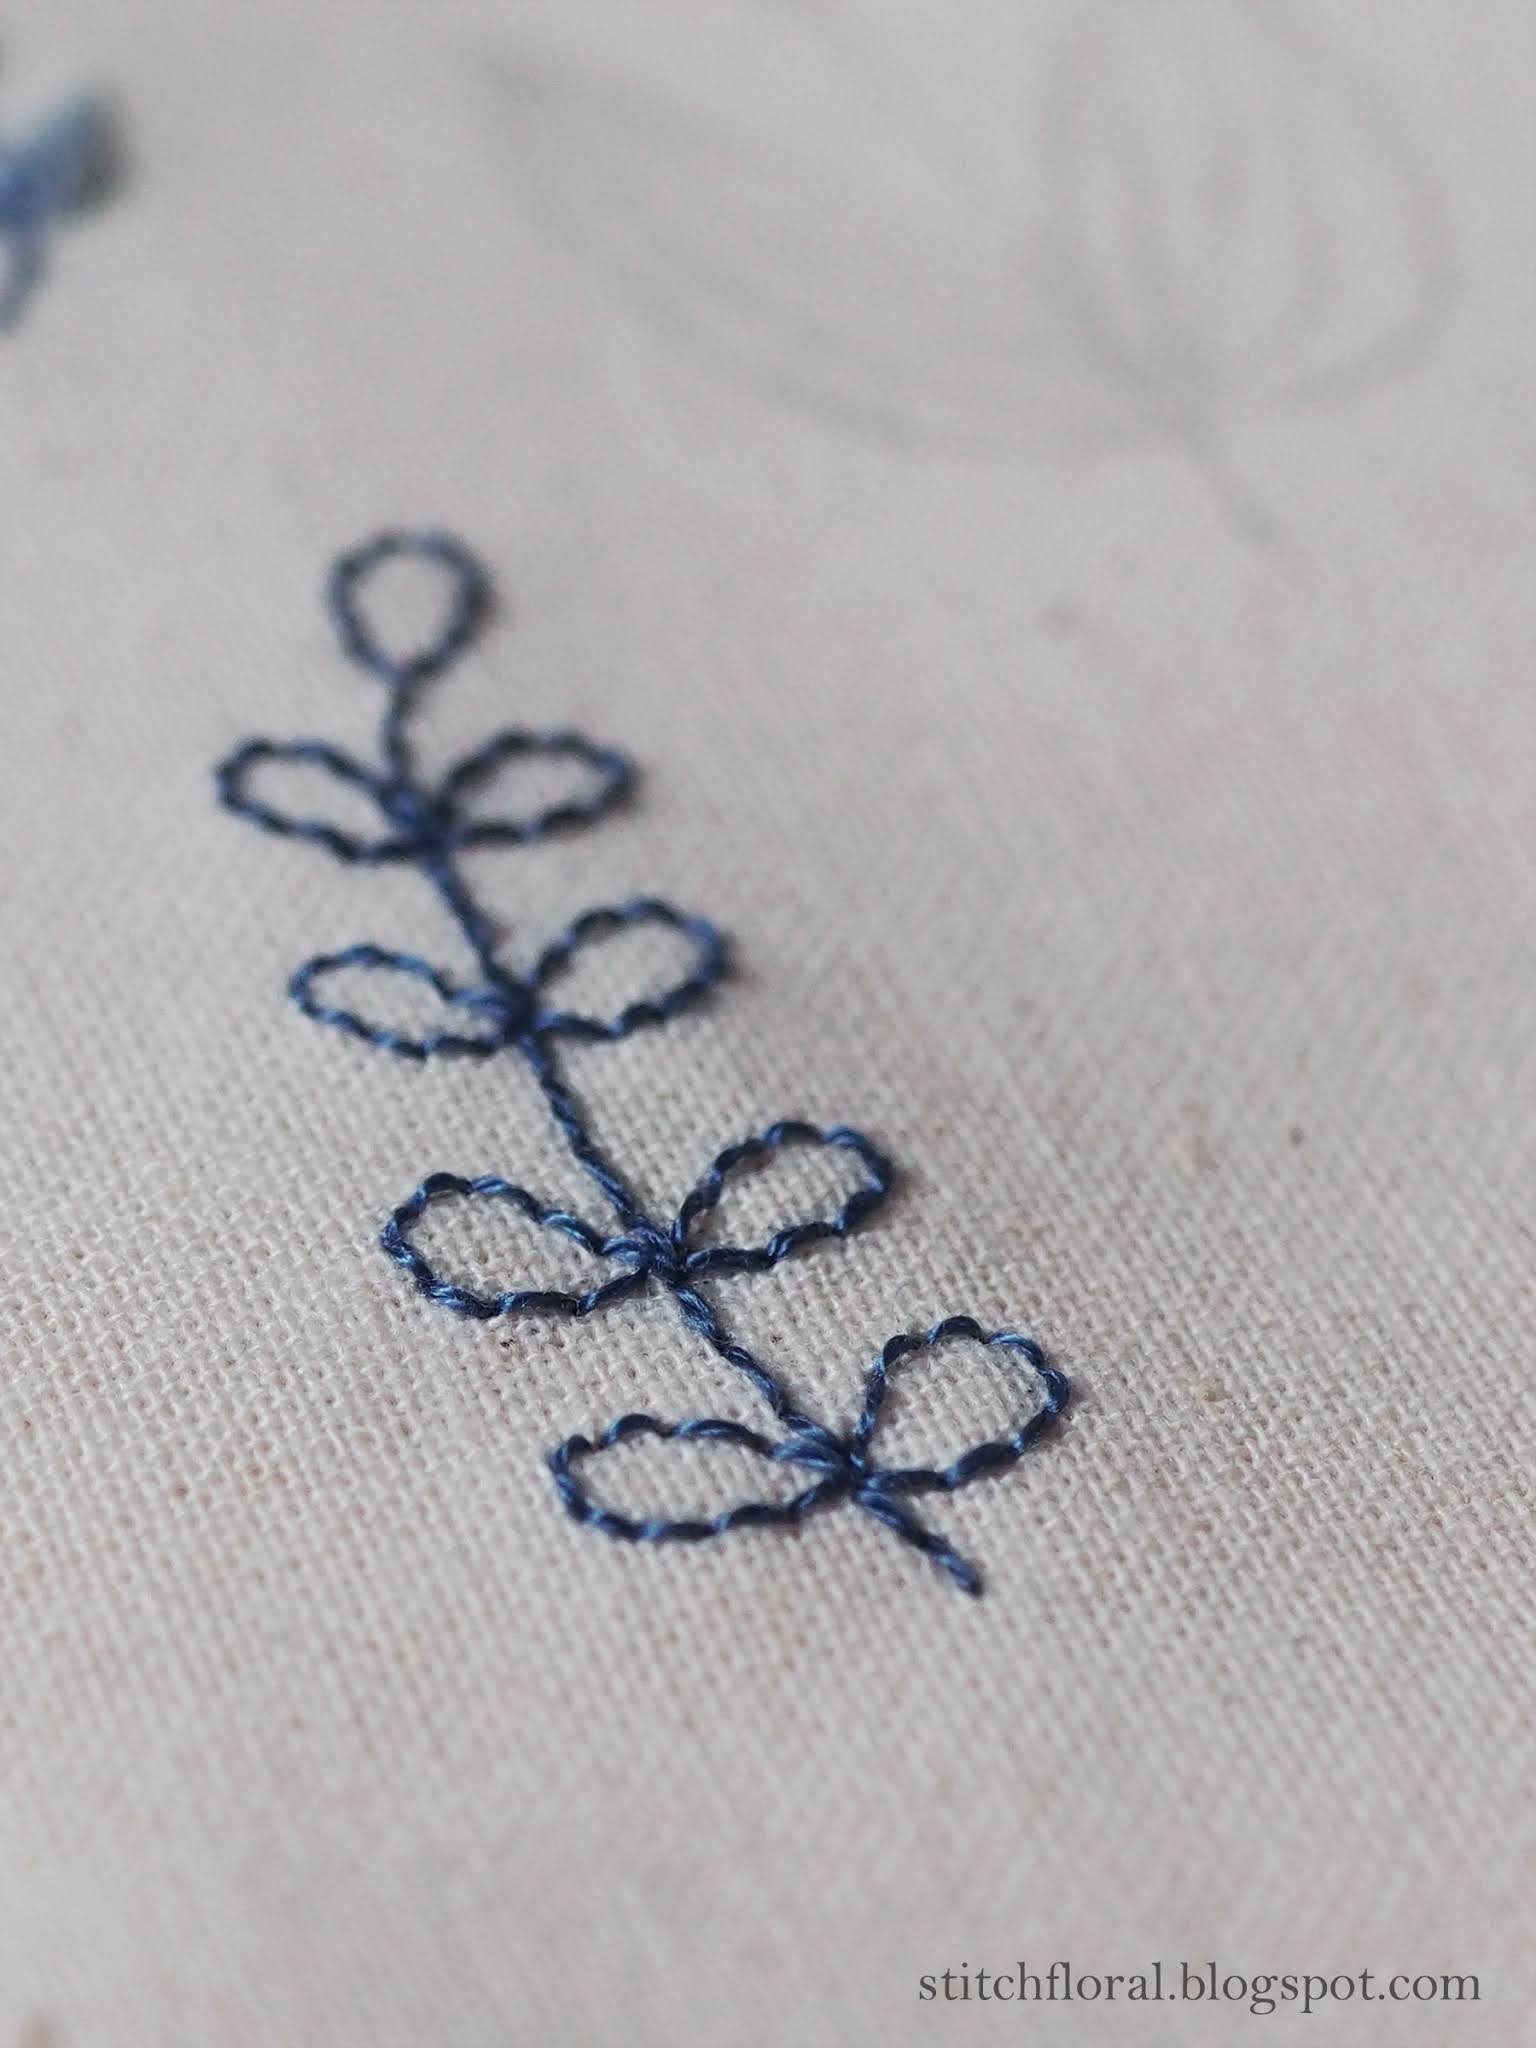 Embroidery Hooping Tip: How to do Hoopless Machine Embroidery